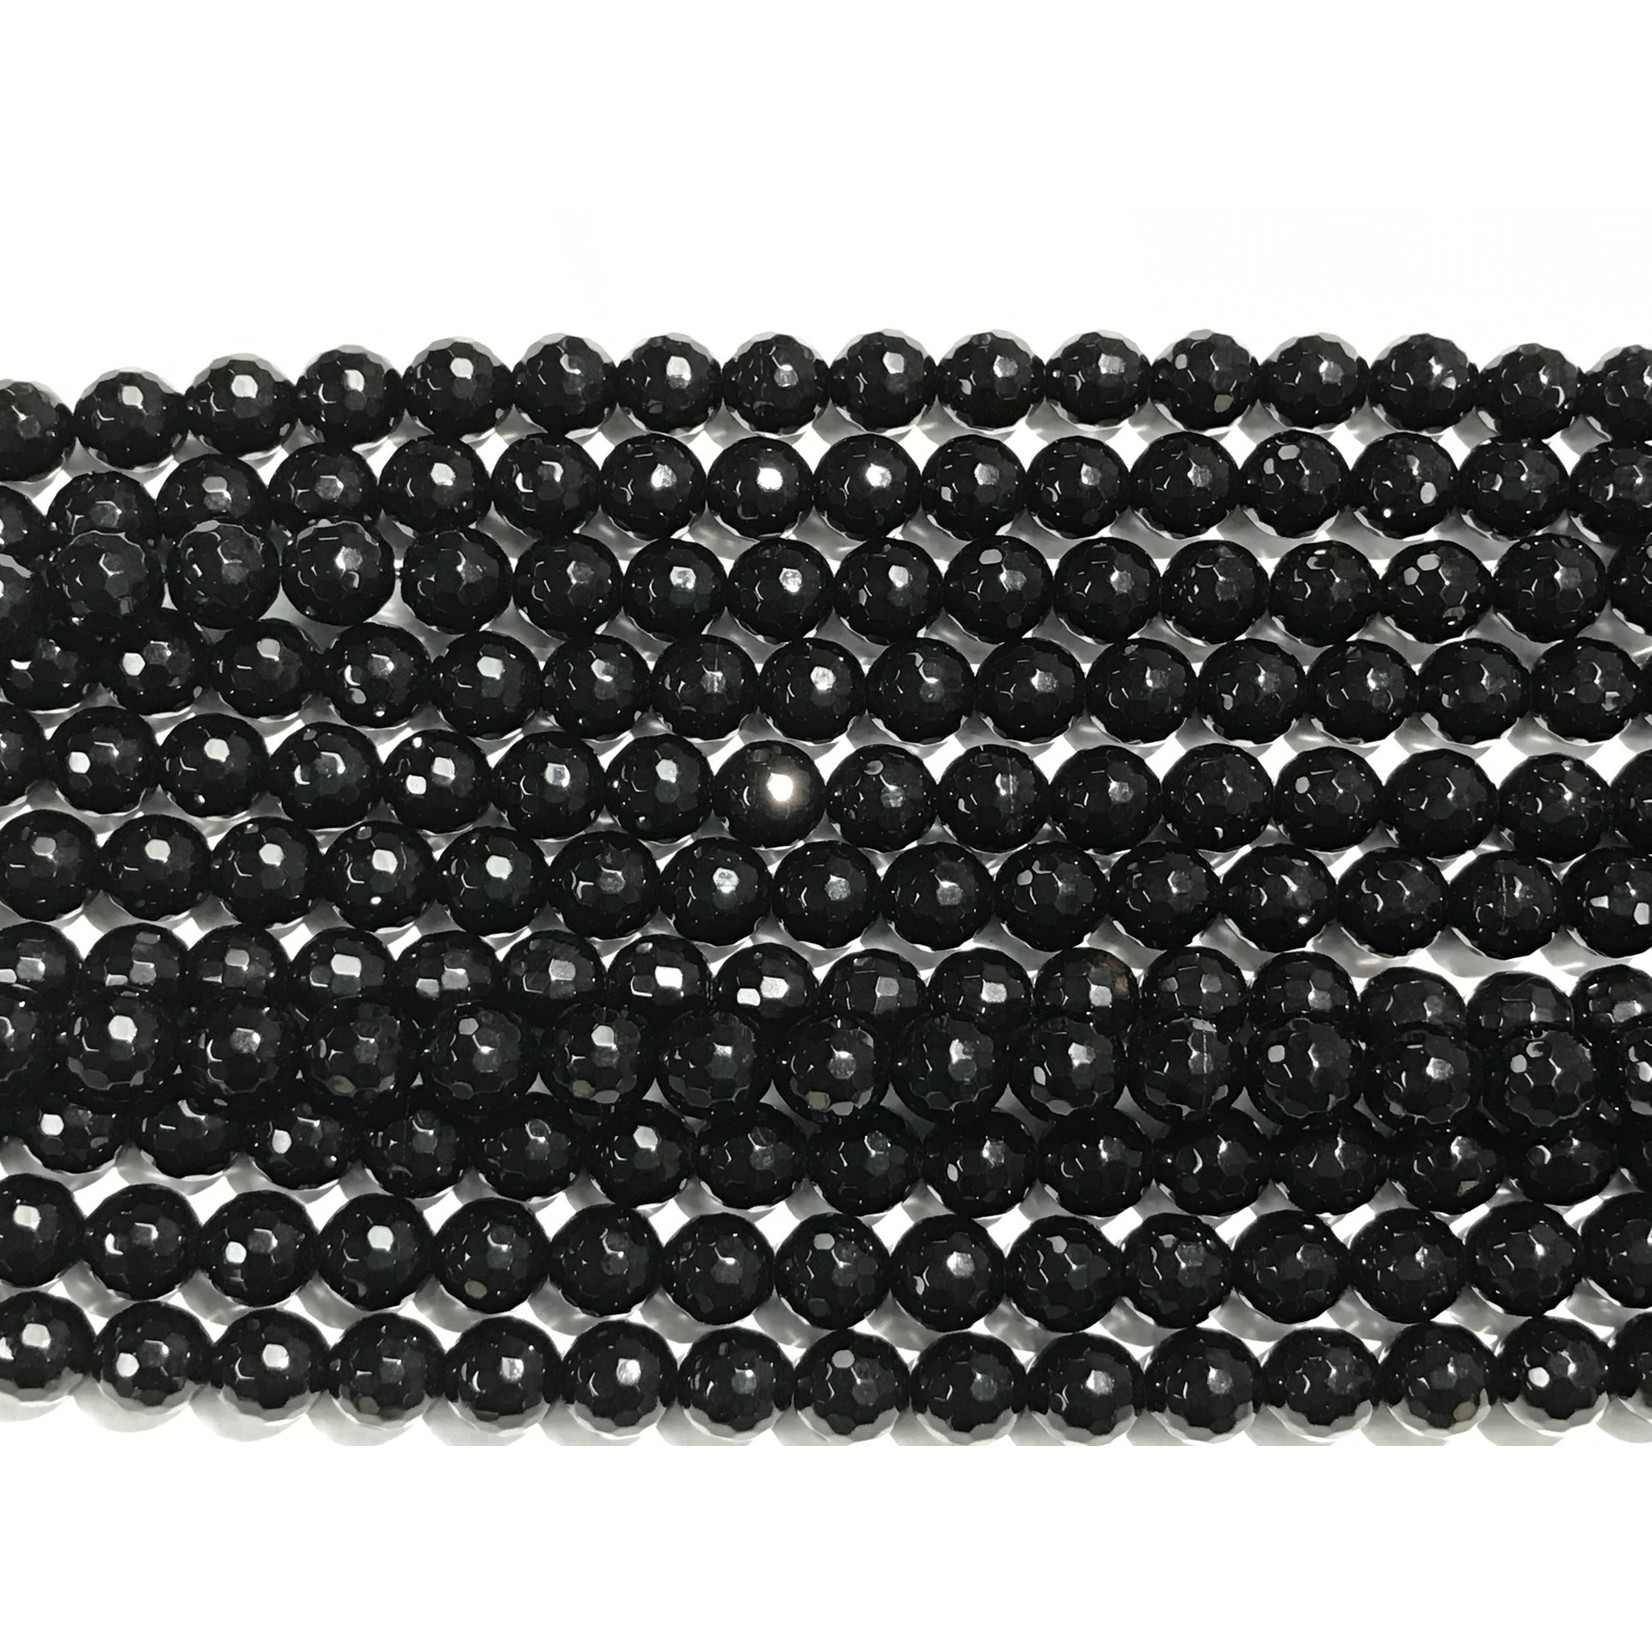 AGATE Dyed Black 8mm Faceted